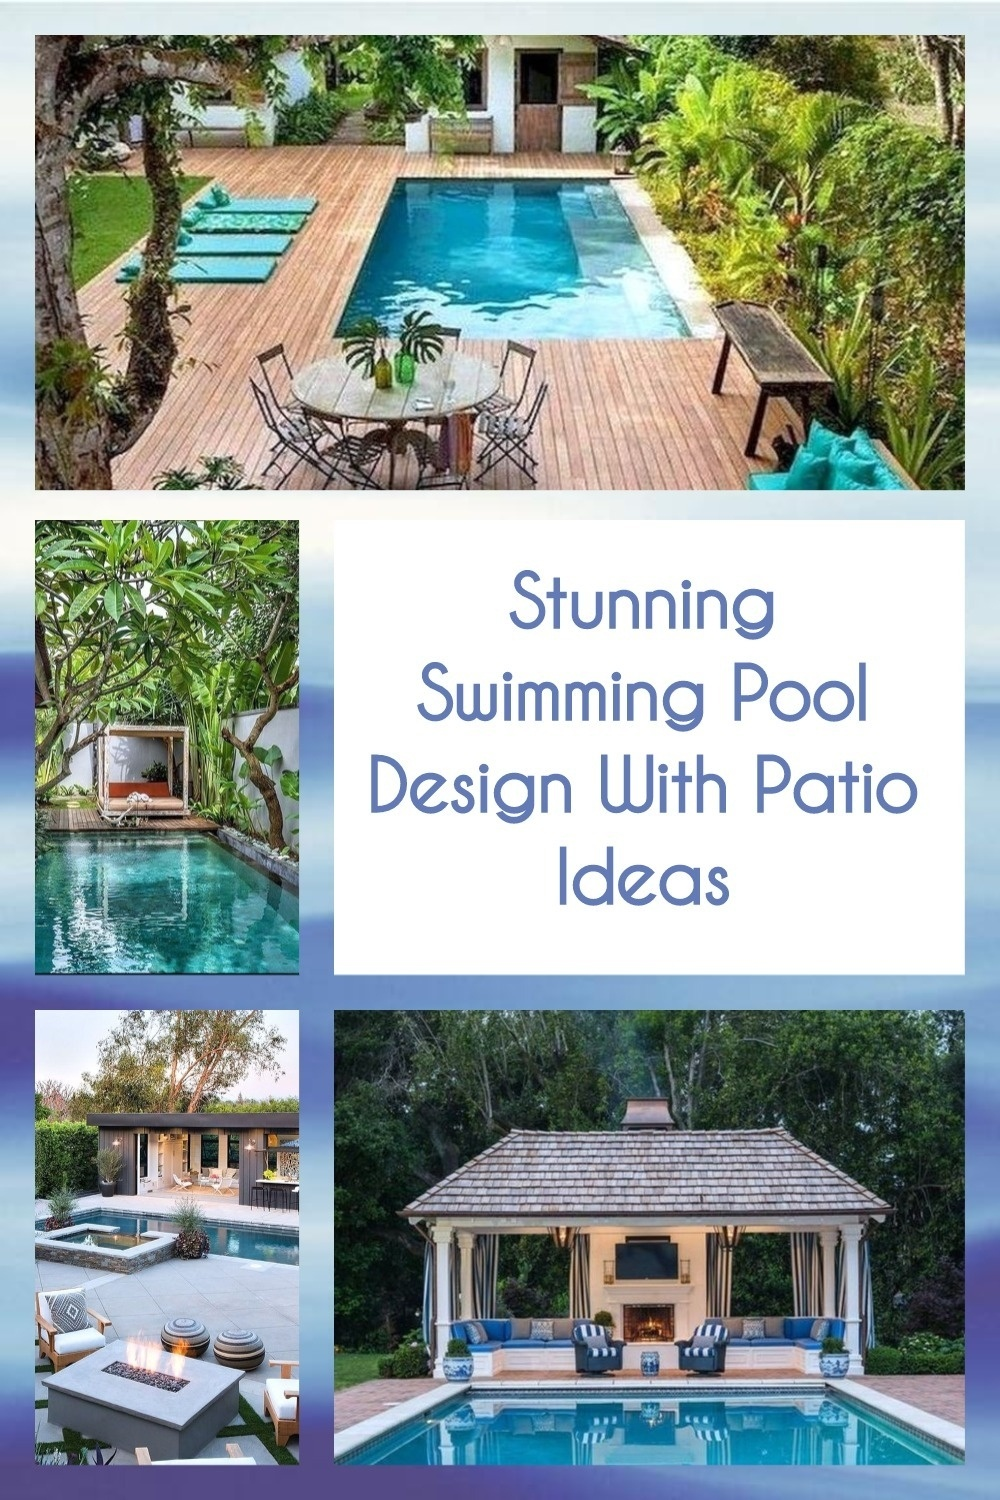 Stunning Swimming Pool Design With Patio Ideas